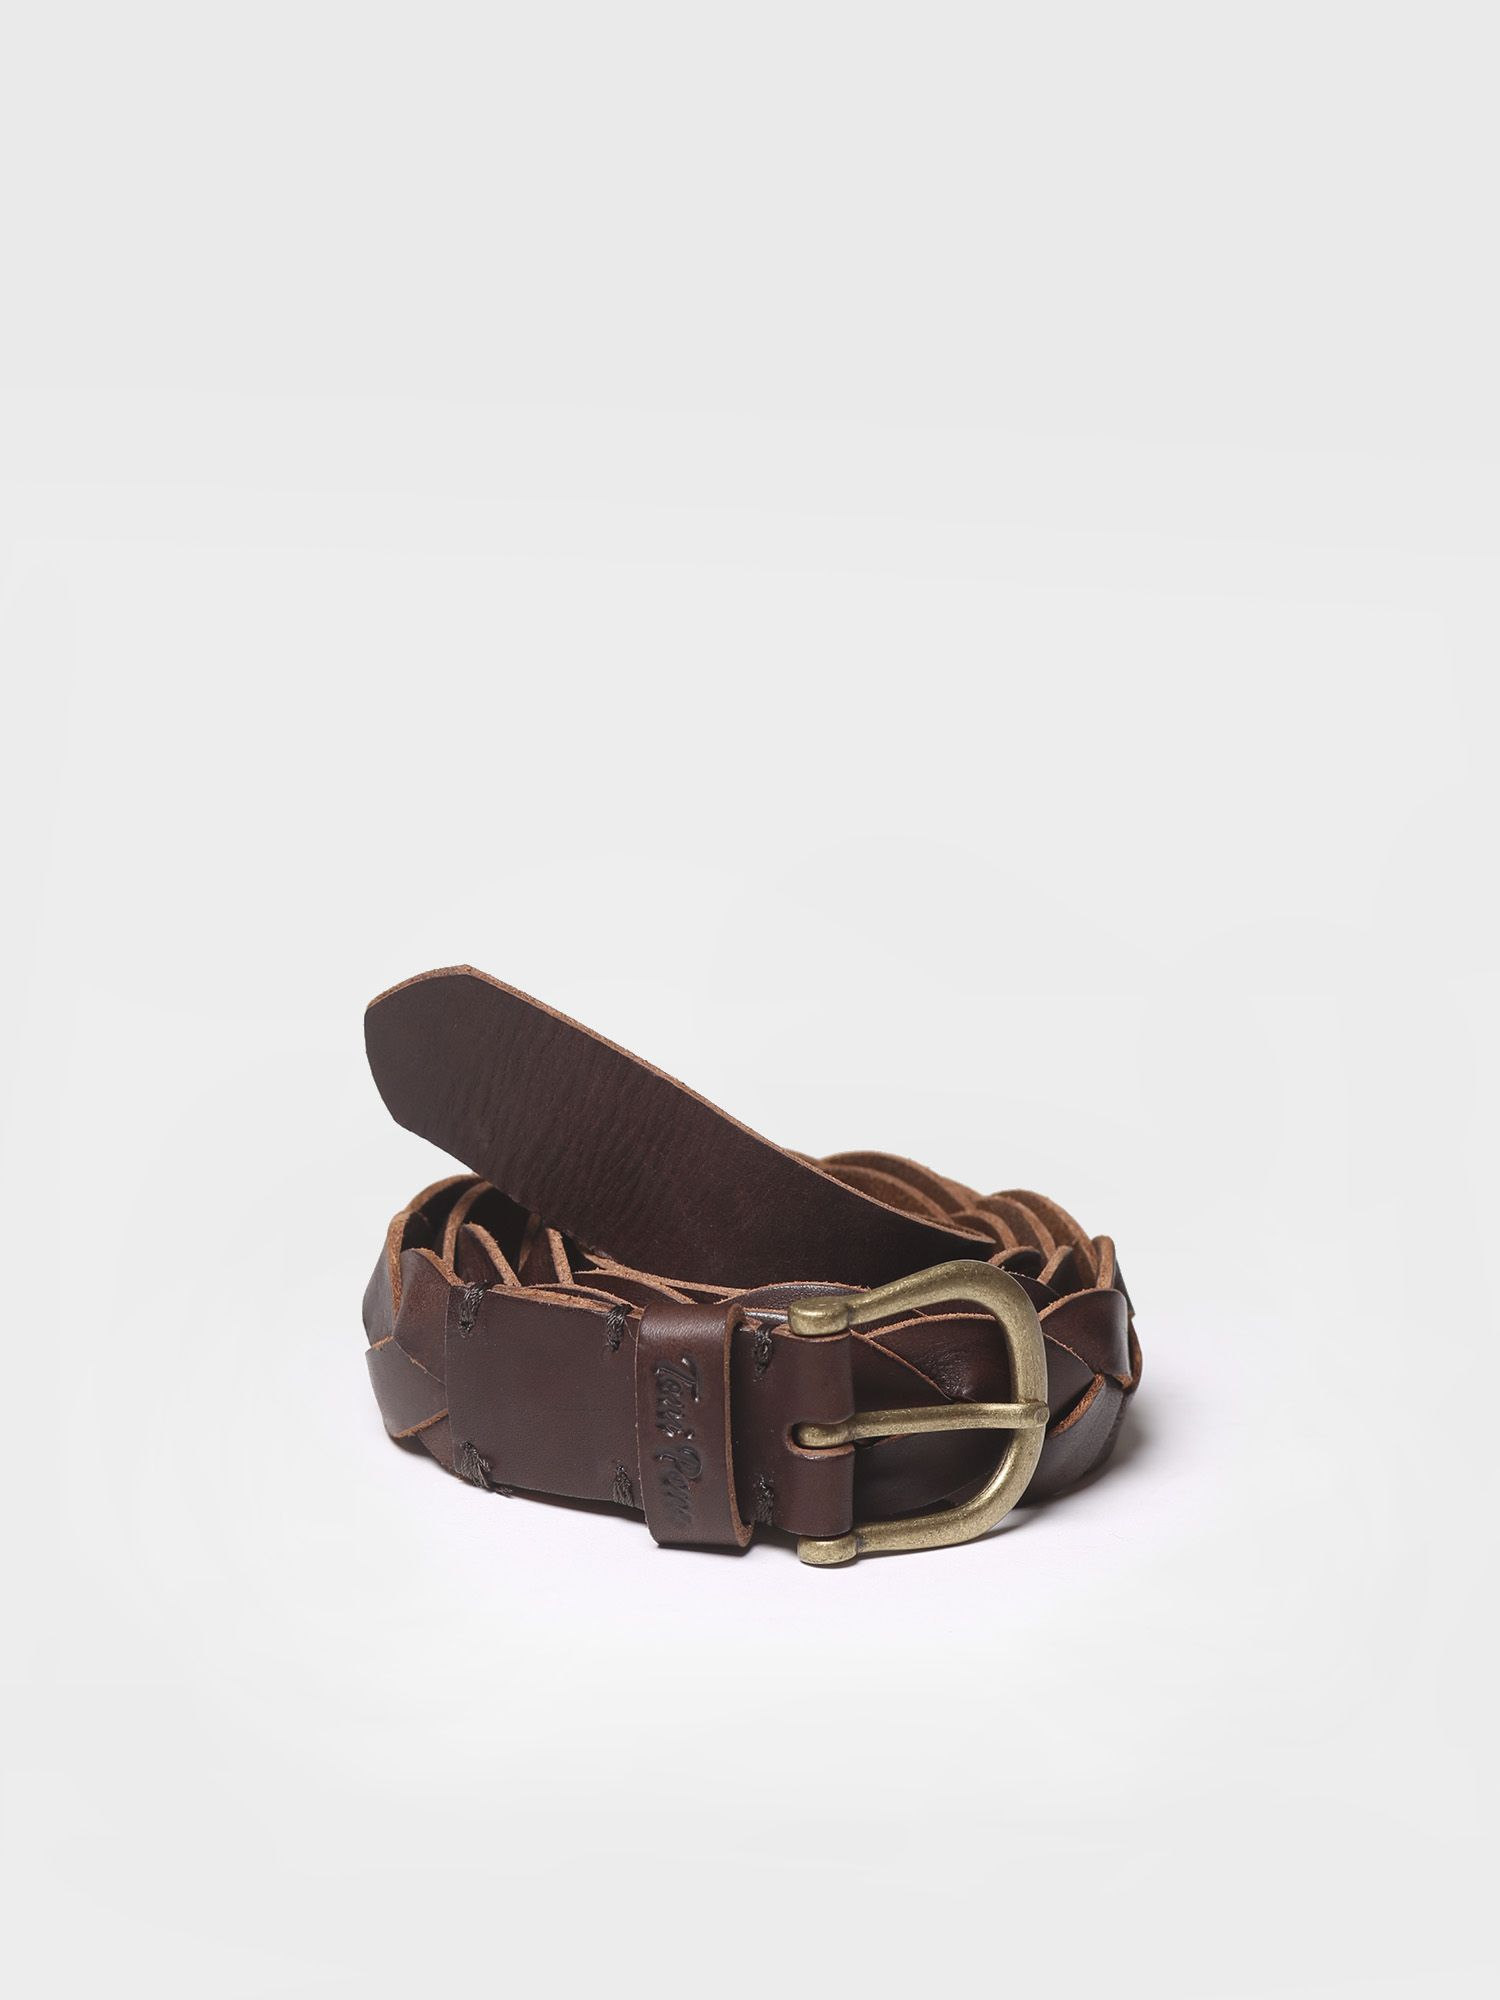 Women's belt in braided leather - NICTE